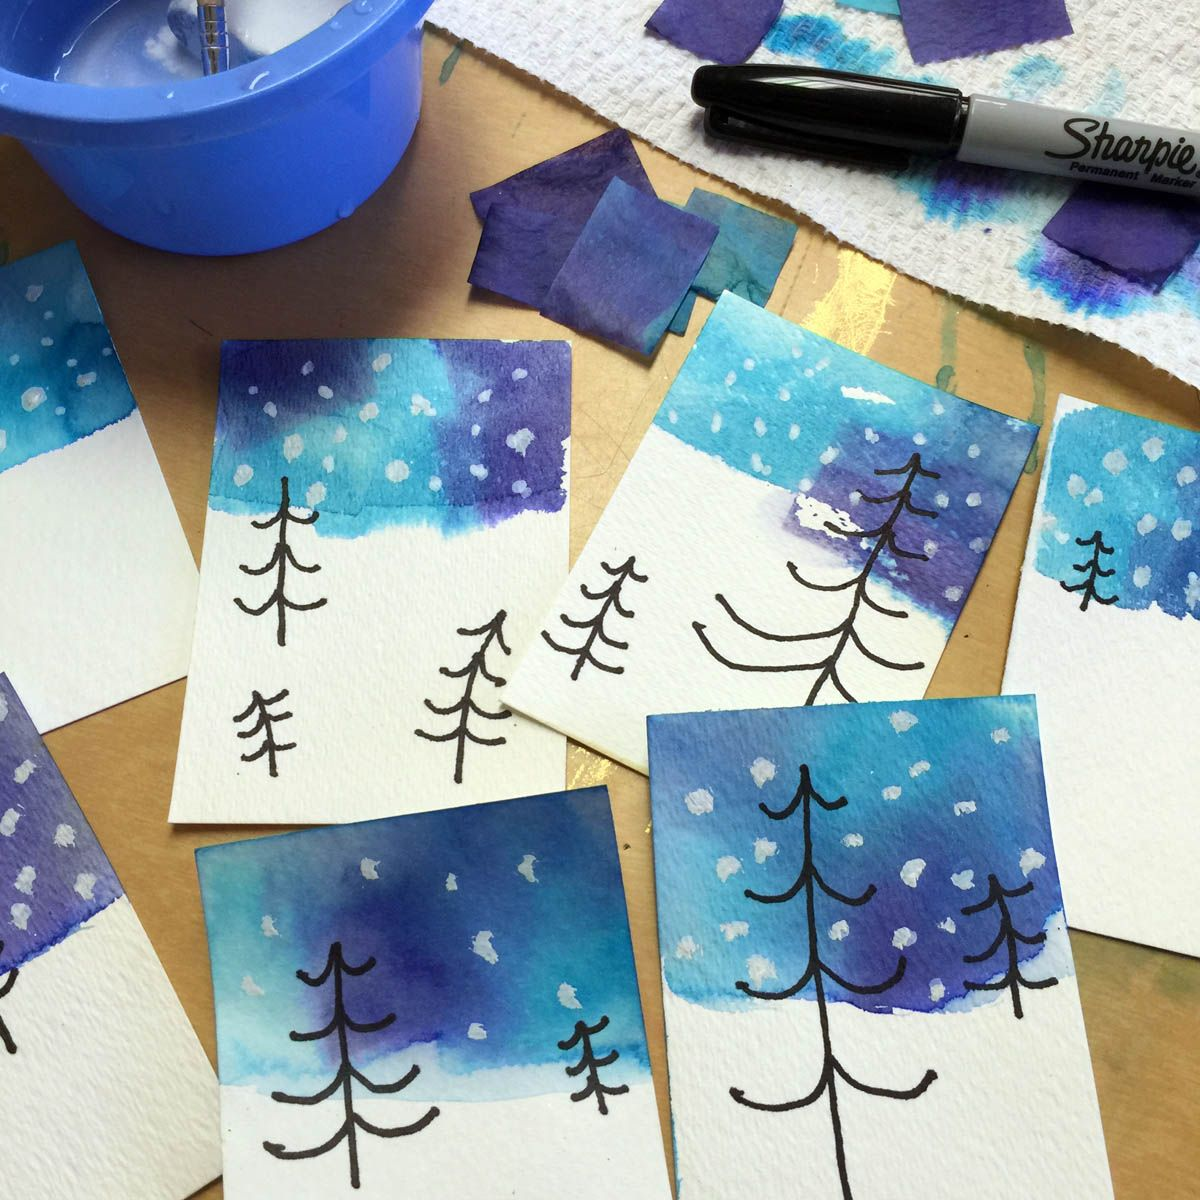 How to Paint Winter Skies (without Paint!) Christmas art